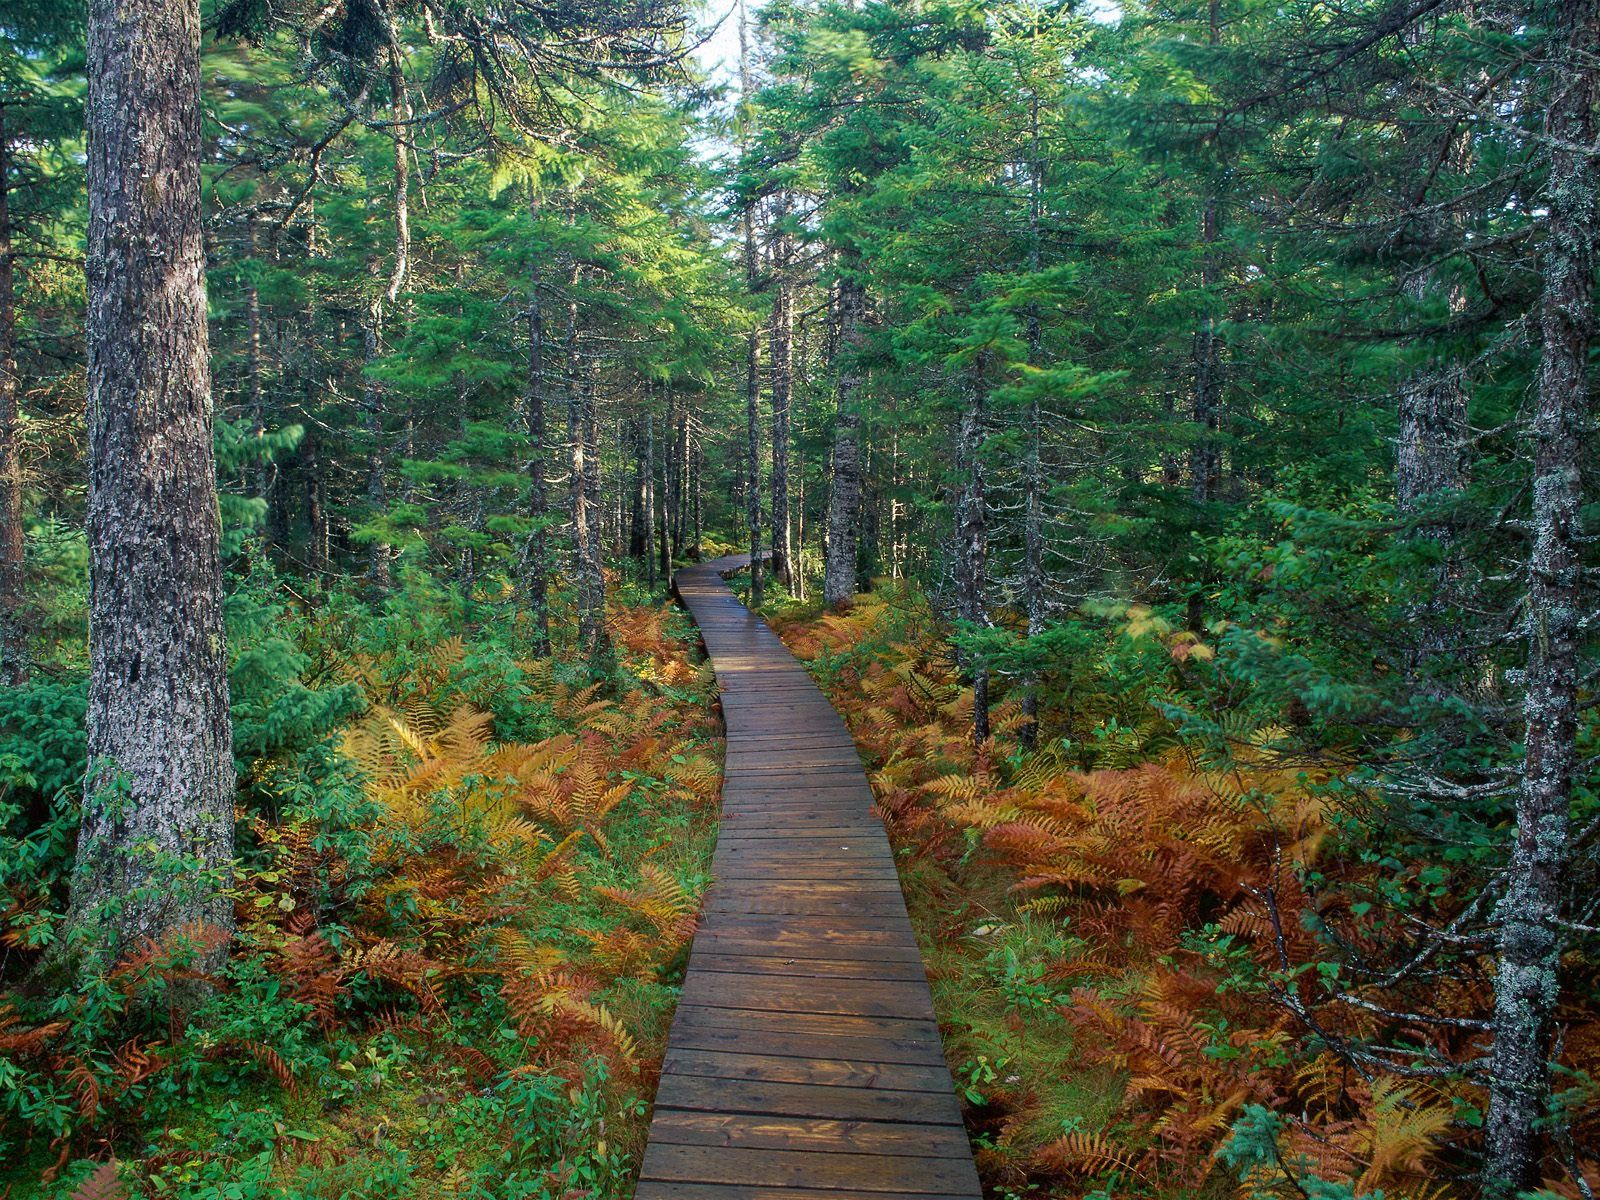 Park New Brunswick Canada. I can smell the moss, the trees now *sigh ...